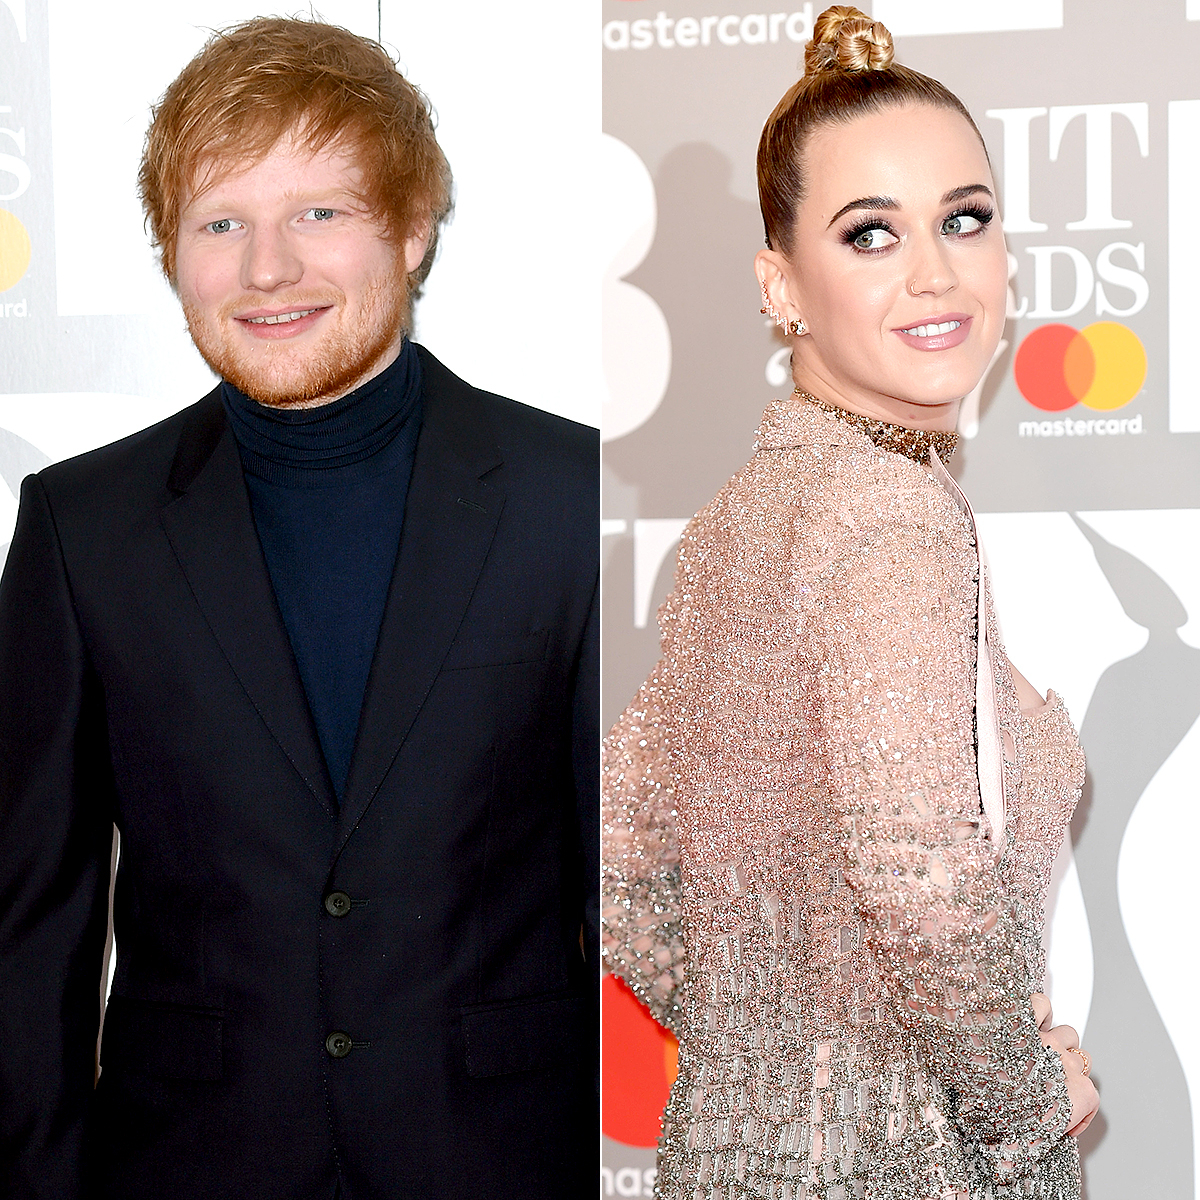 Katy Perry and Ed Sheeran Became Instant Best Friends At Last Night'sBRITs